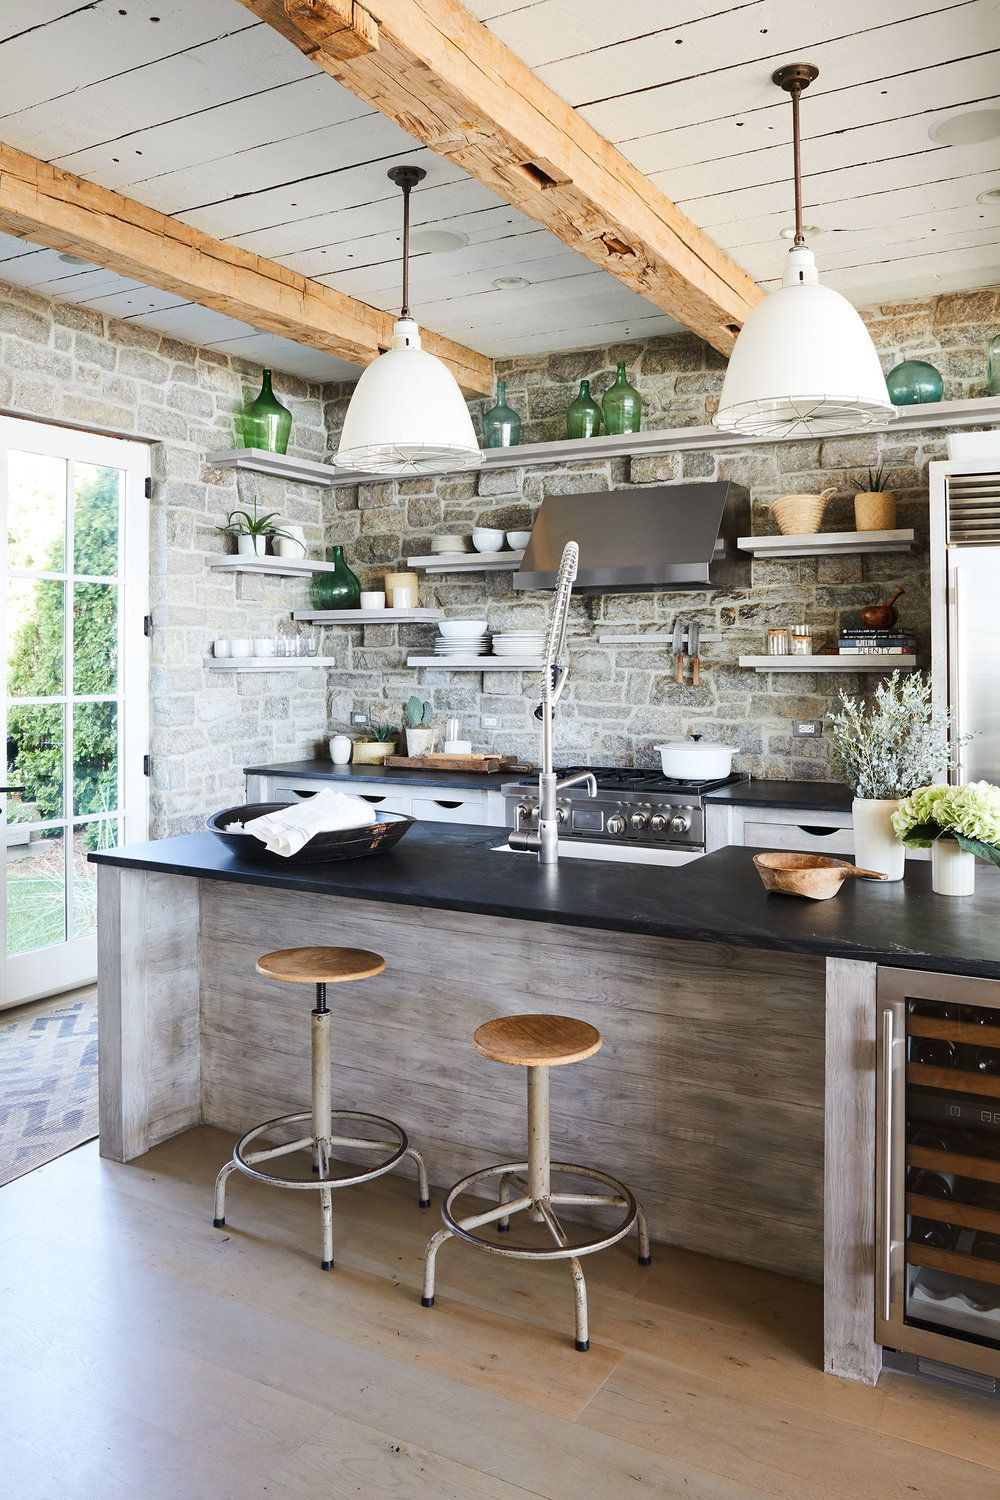 3 zimmer bto küchenideen want an insanely sexy kitchen these are the  kitchen trends you